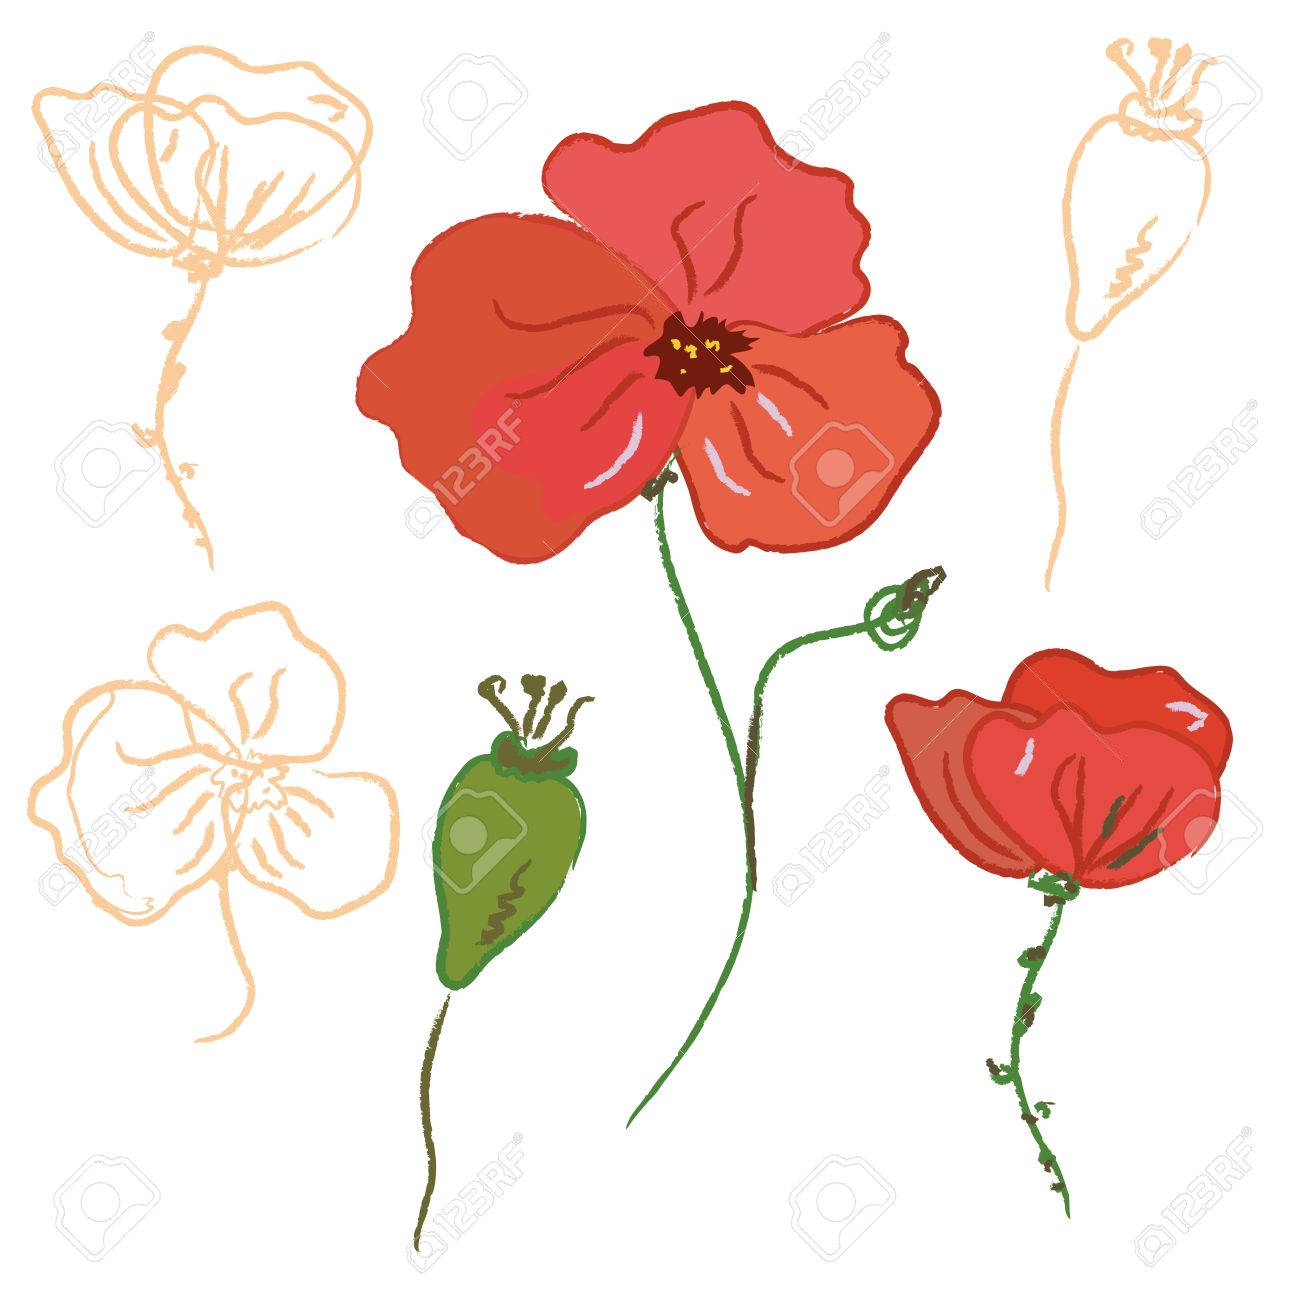 Sketch of poppy flower and seeds Stock Vector - 6779416